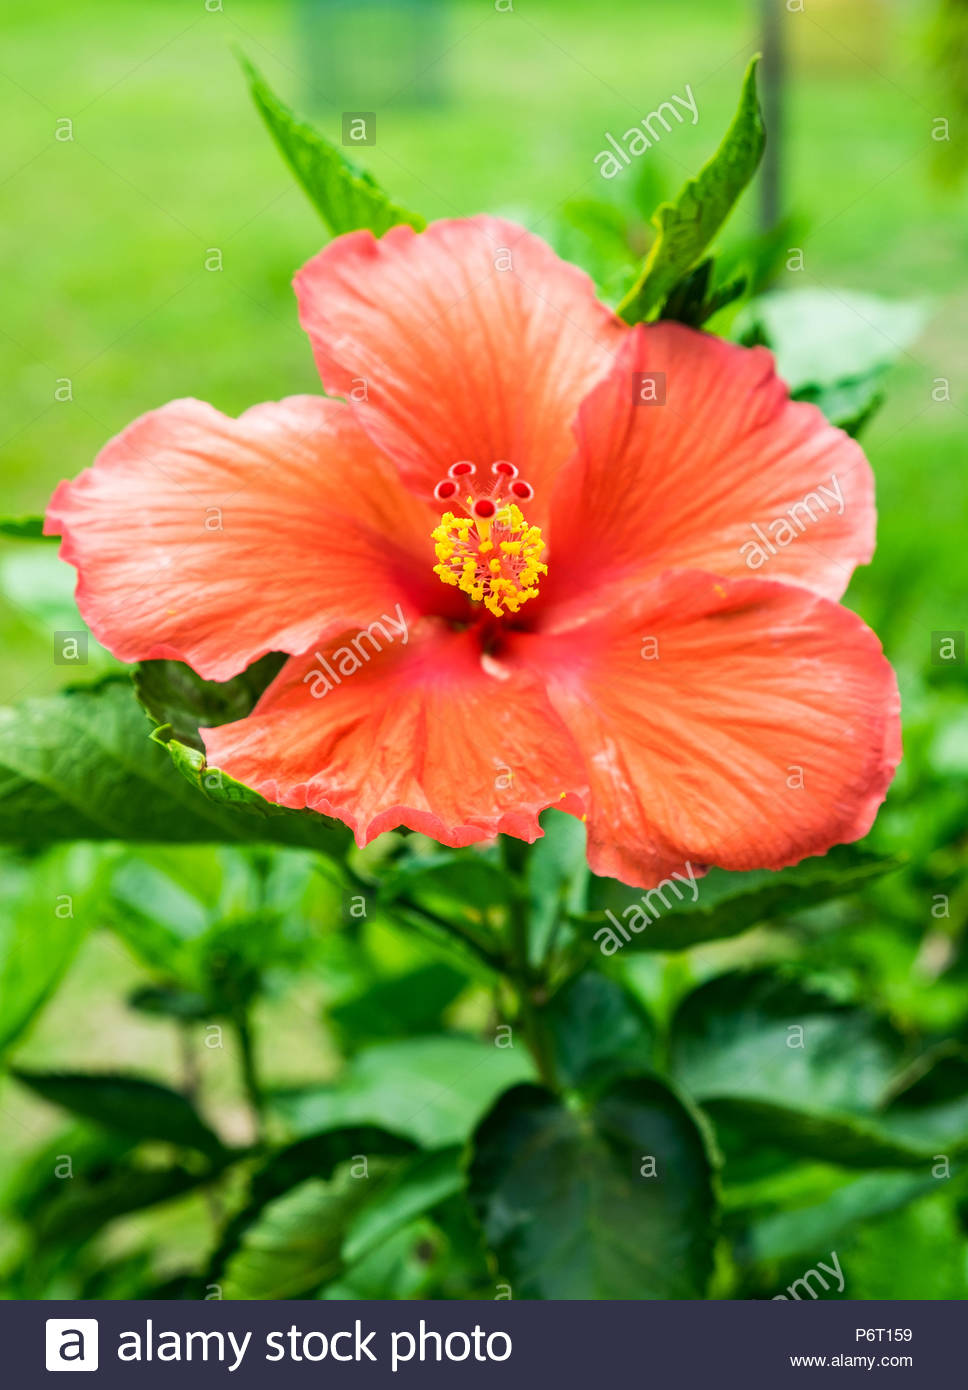 Hawaiian flower stock photos hawaiian flower stock images alamy red orange hibiscus china rose hawaiian flower blossom colorful ornamental stock image izmirmasajfo